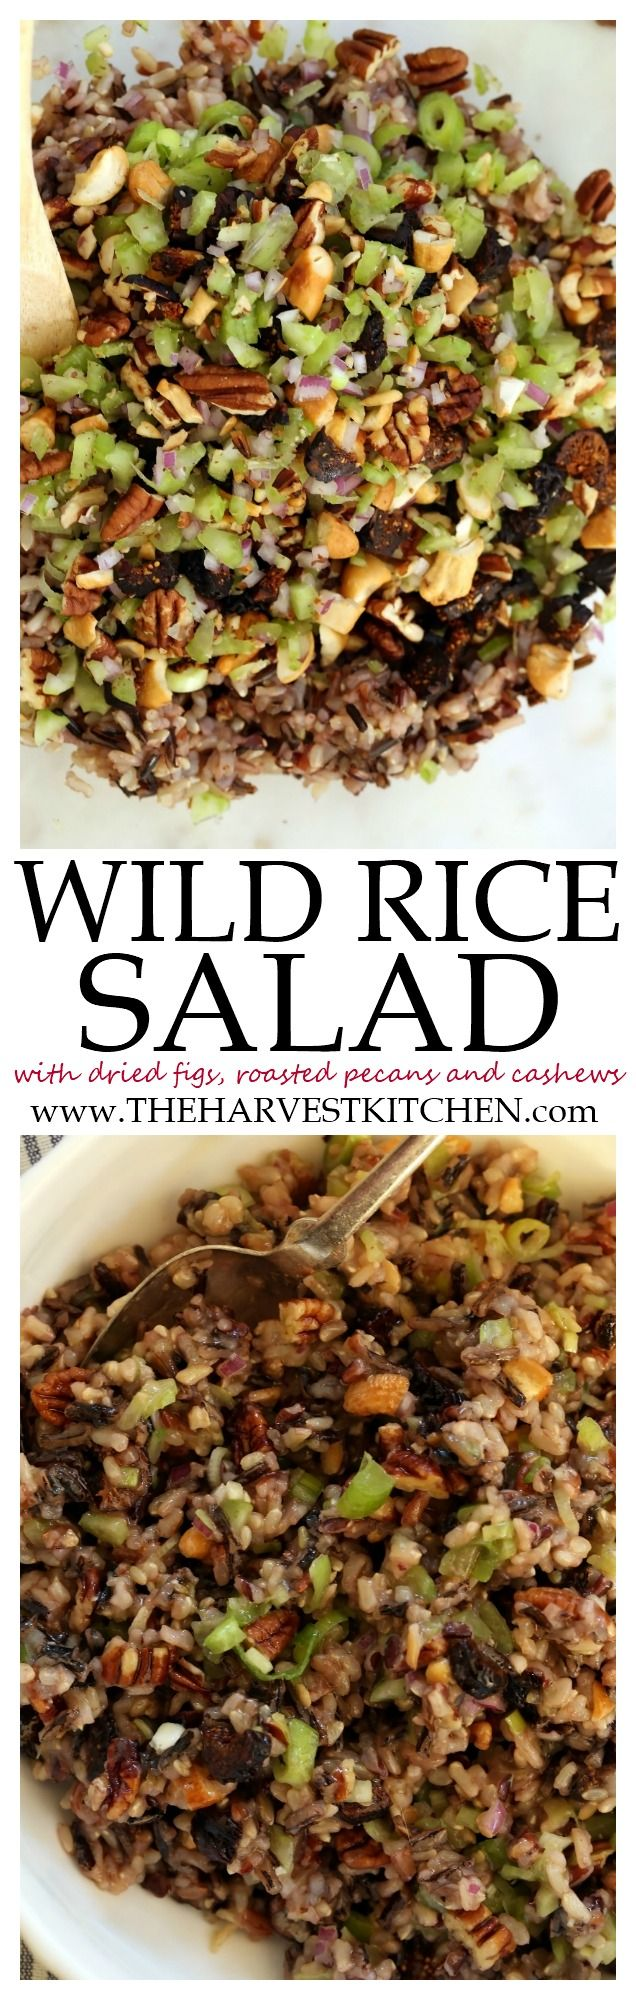 This simple Wild Rice Salad is a riff on Gulfstream's Wild Rice Salad recipe. It's got an incredible combo of flavors, and makes a great gluten-free side dish for the holidays or any night of the week. @theharvestkitchen.com